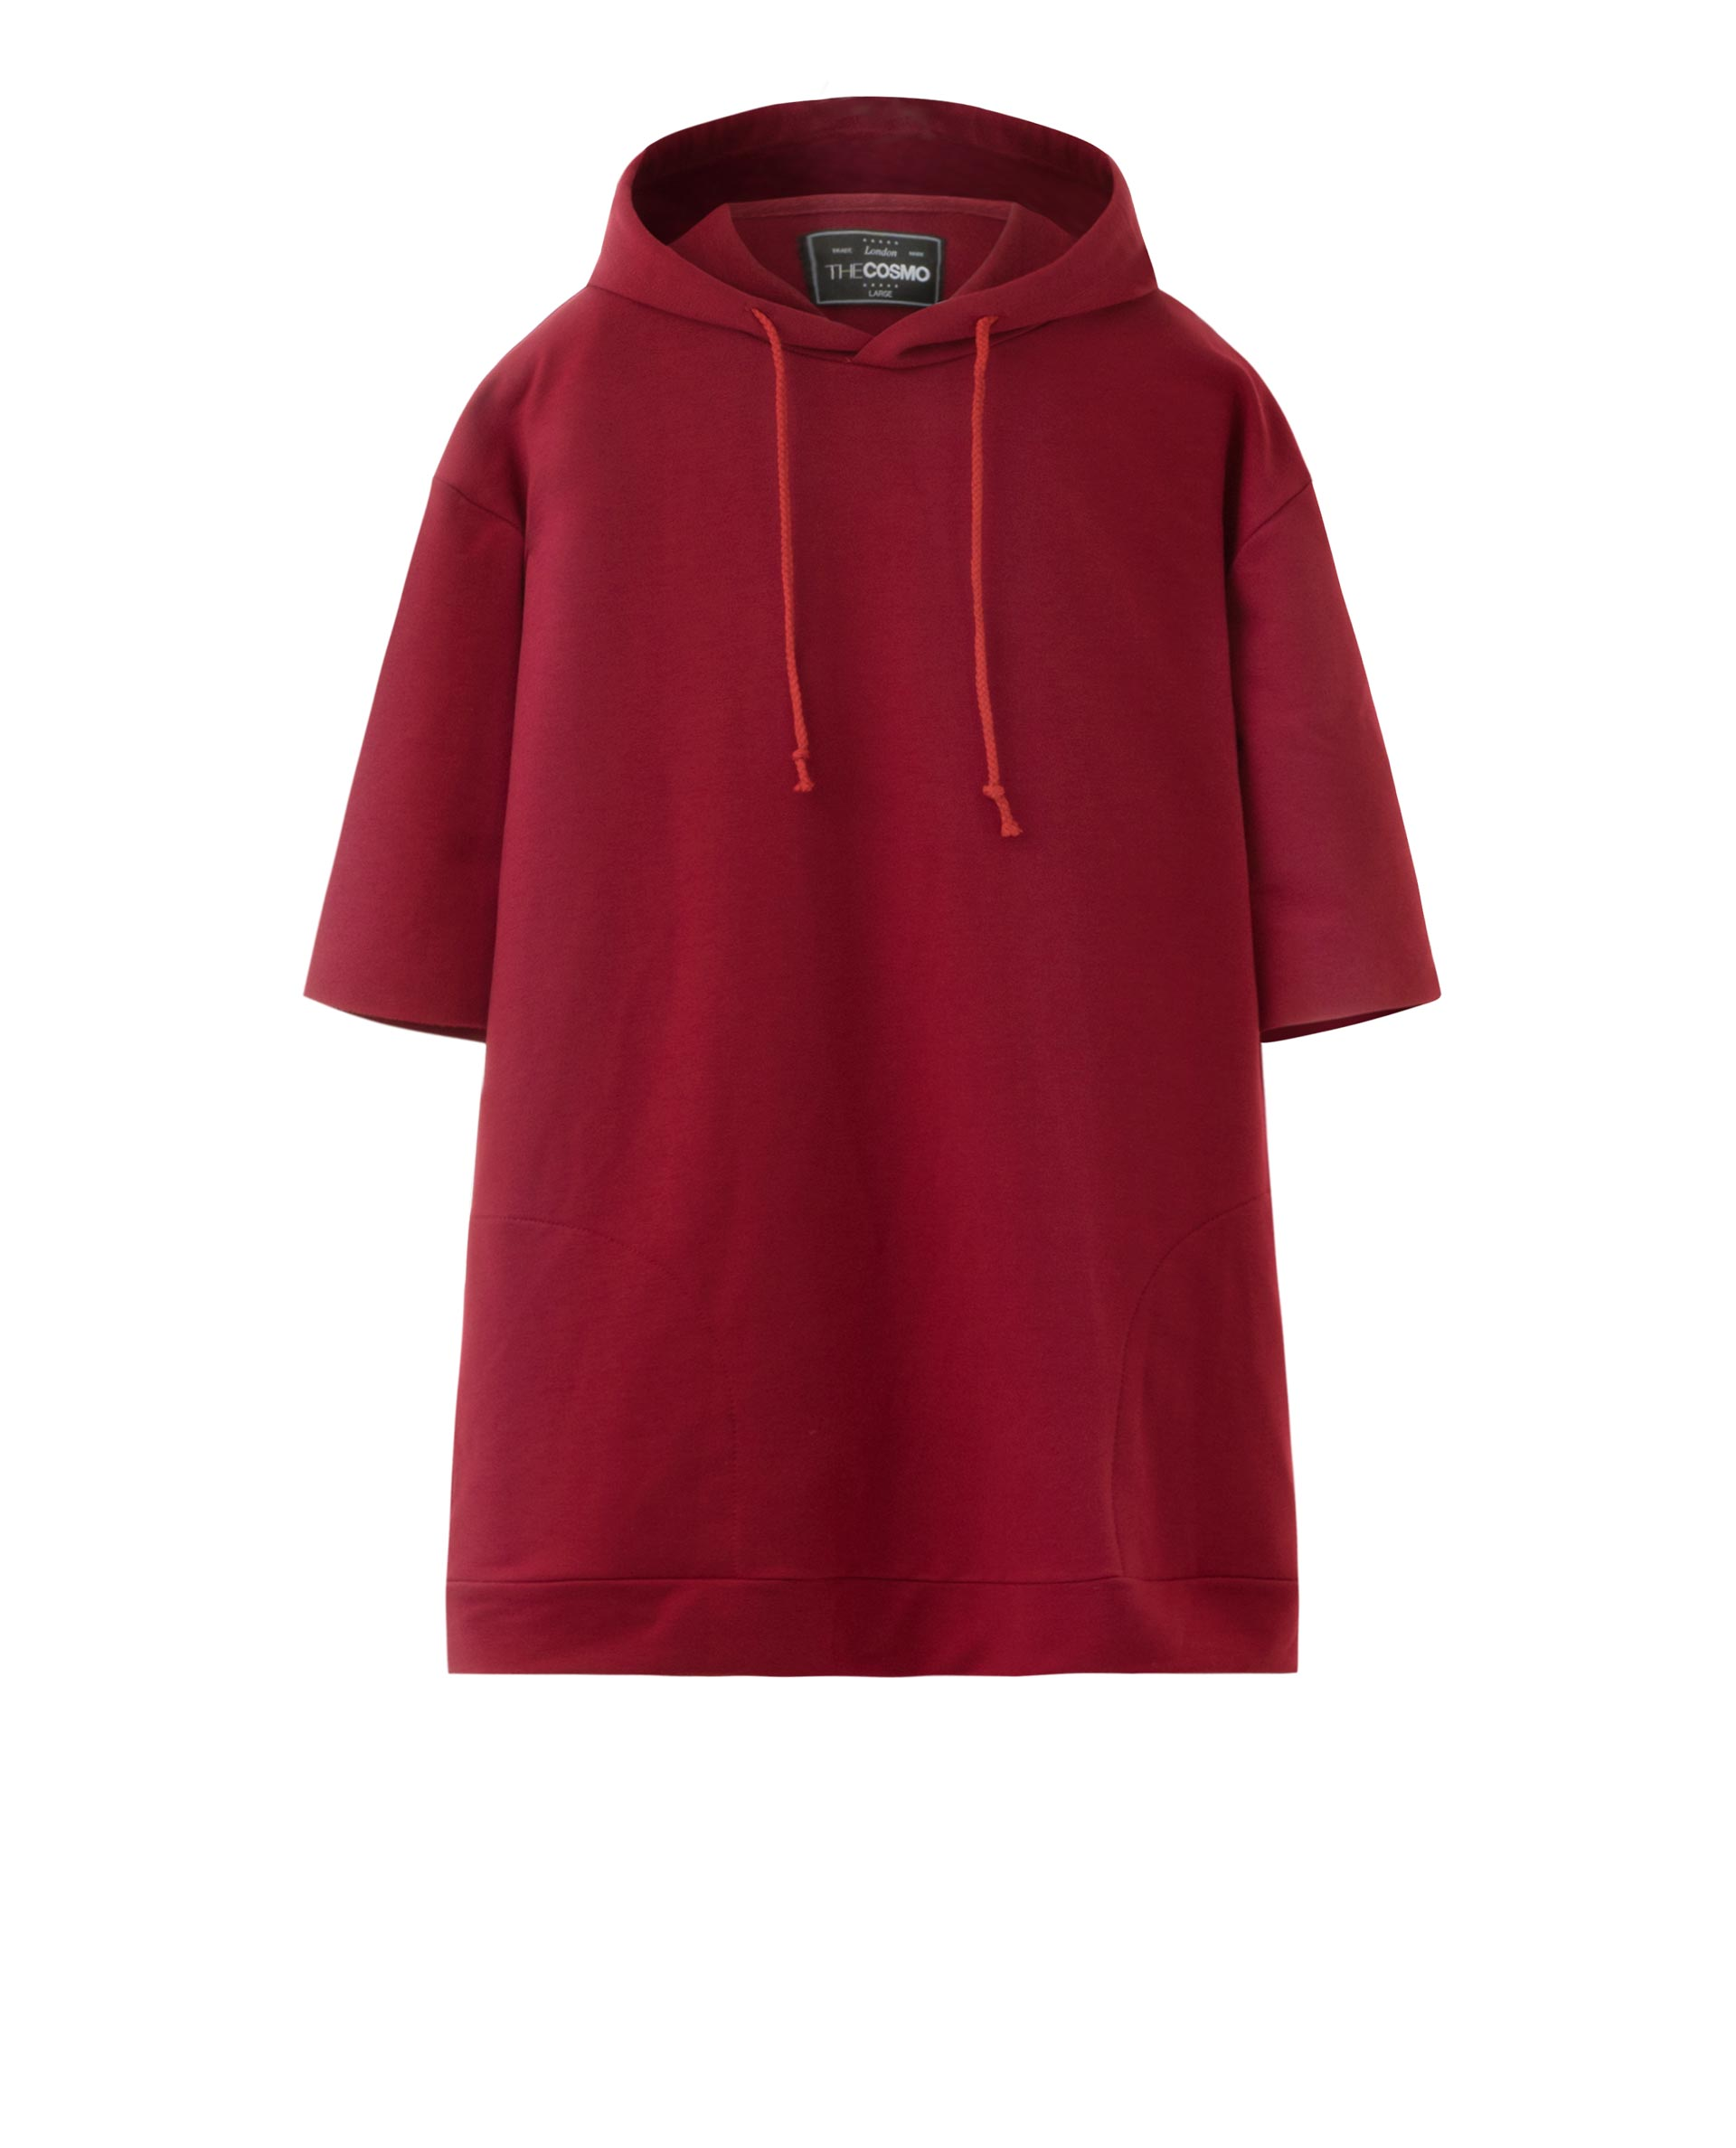 SHORT SLEEVE HOODY (RED)